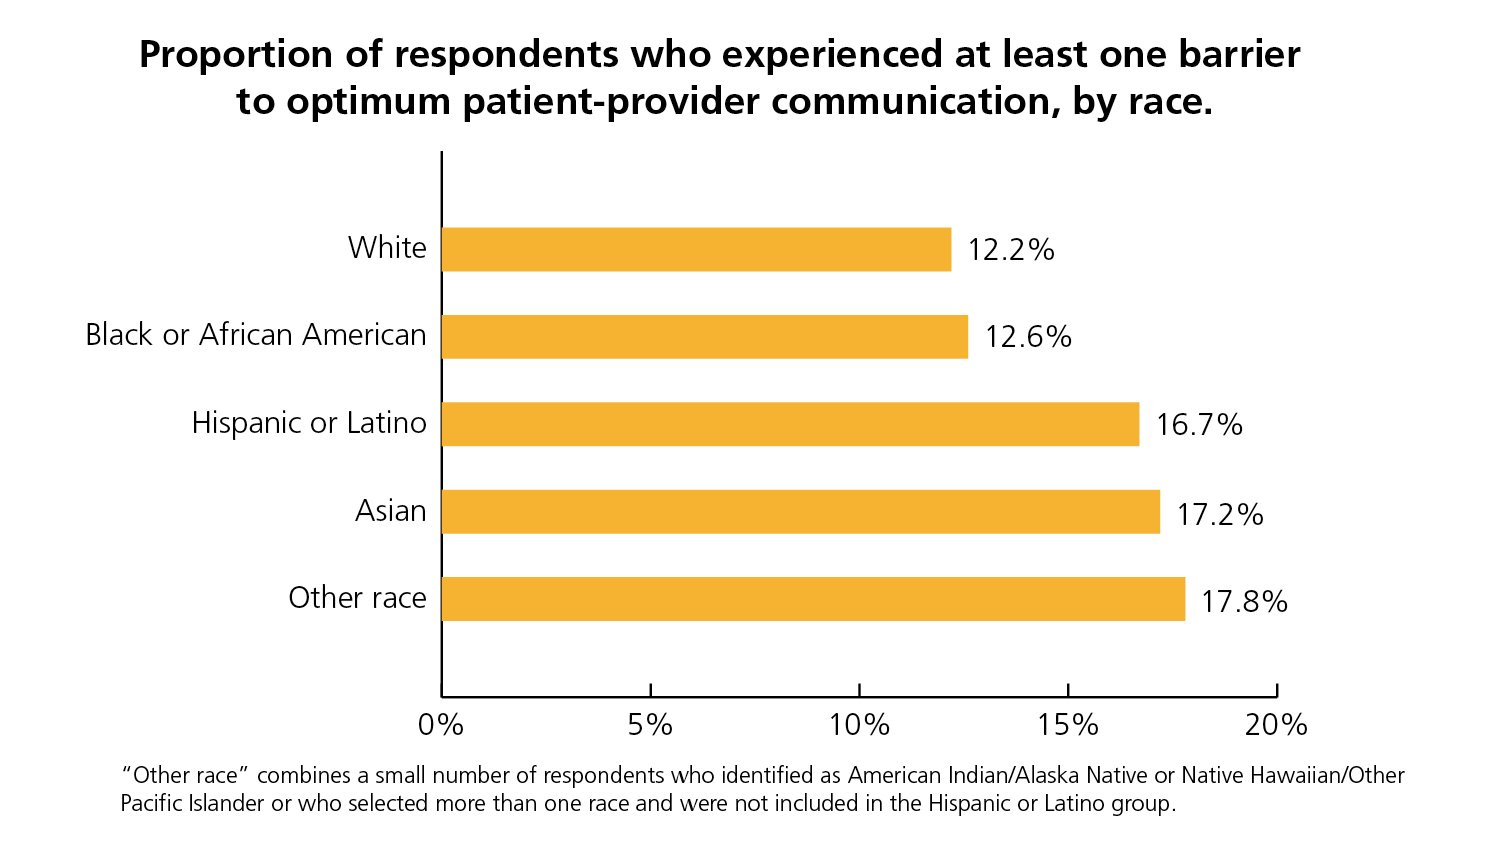 U.S. adults who identify as Hispanic or Latino, Asian, or Other Race reported more problems with patient-provider communications than did respondents who were white or black or African American.